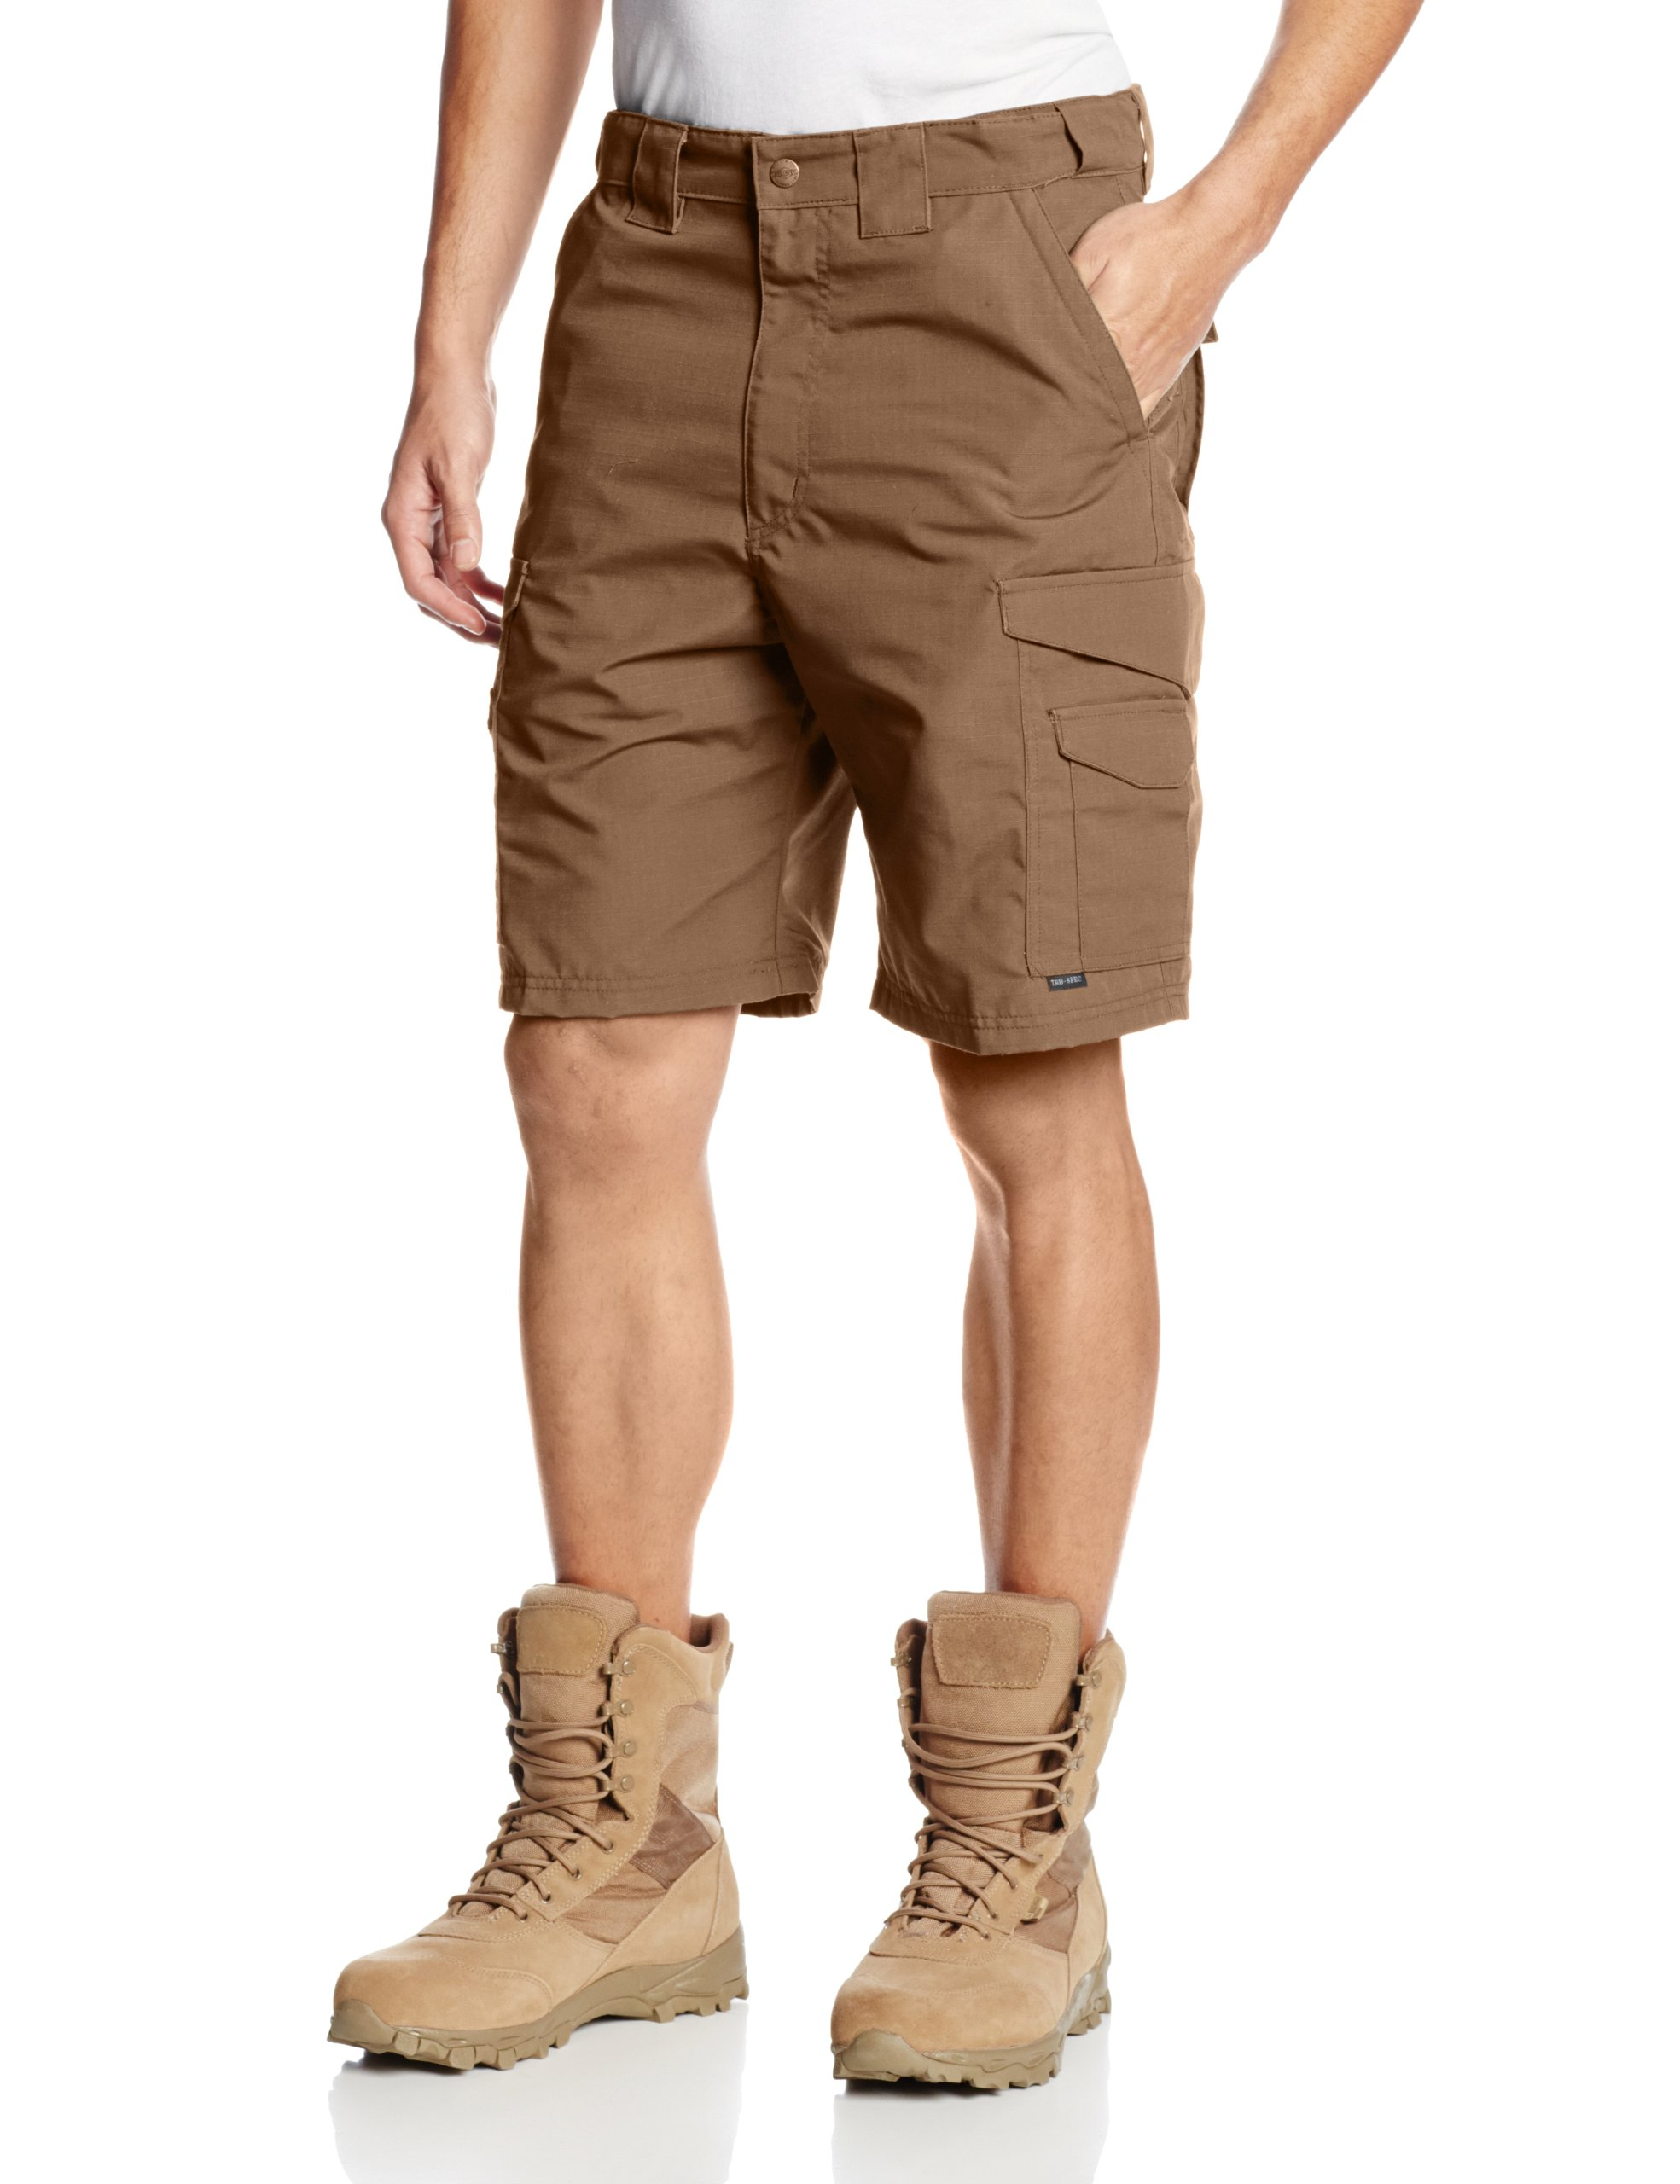 TRU-SPEC Men's 24-7 Polyester Cotton Rip Stop 9-Inch Shorts, Coyote, 36-Inch